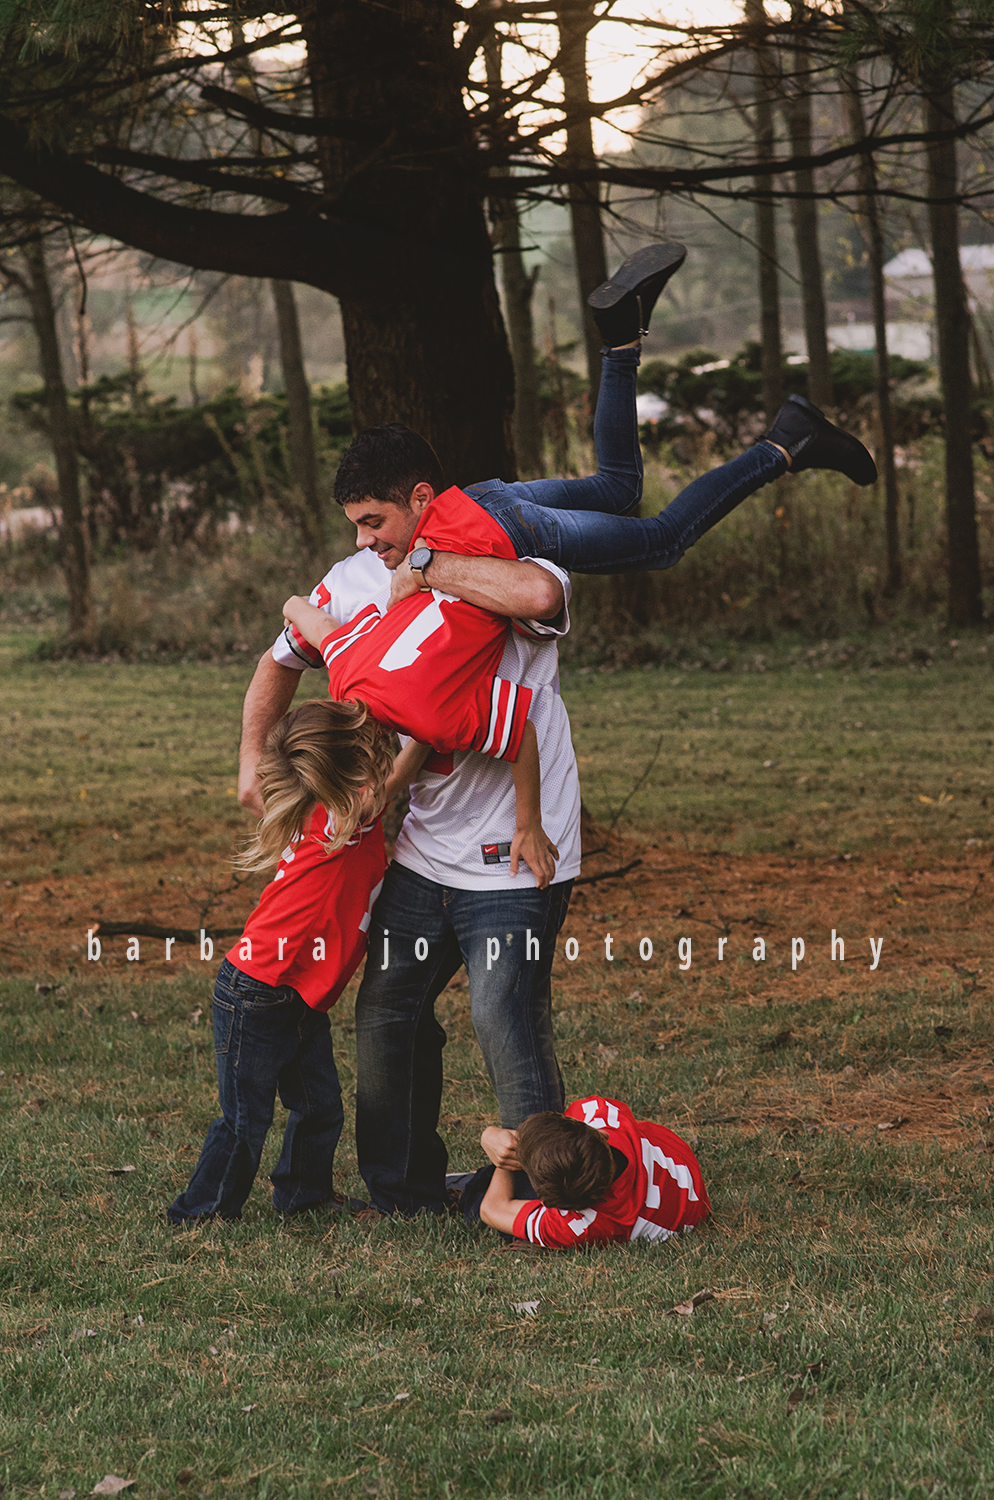 bjp-family-photographer-kids-siblings-blended-brothers-sisters-fall-mini-sessions-children-love-rachel18.png